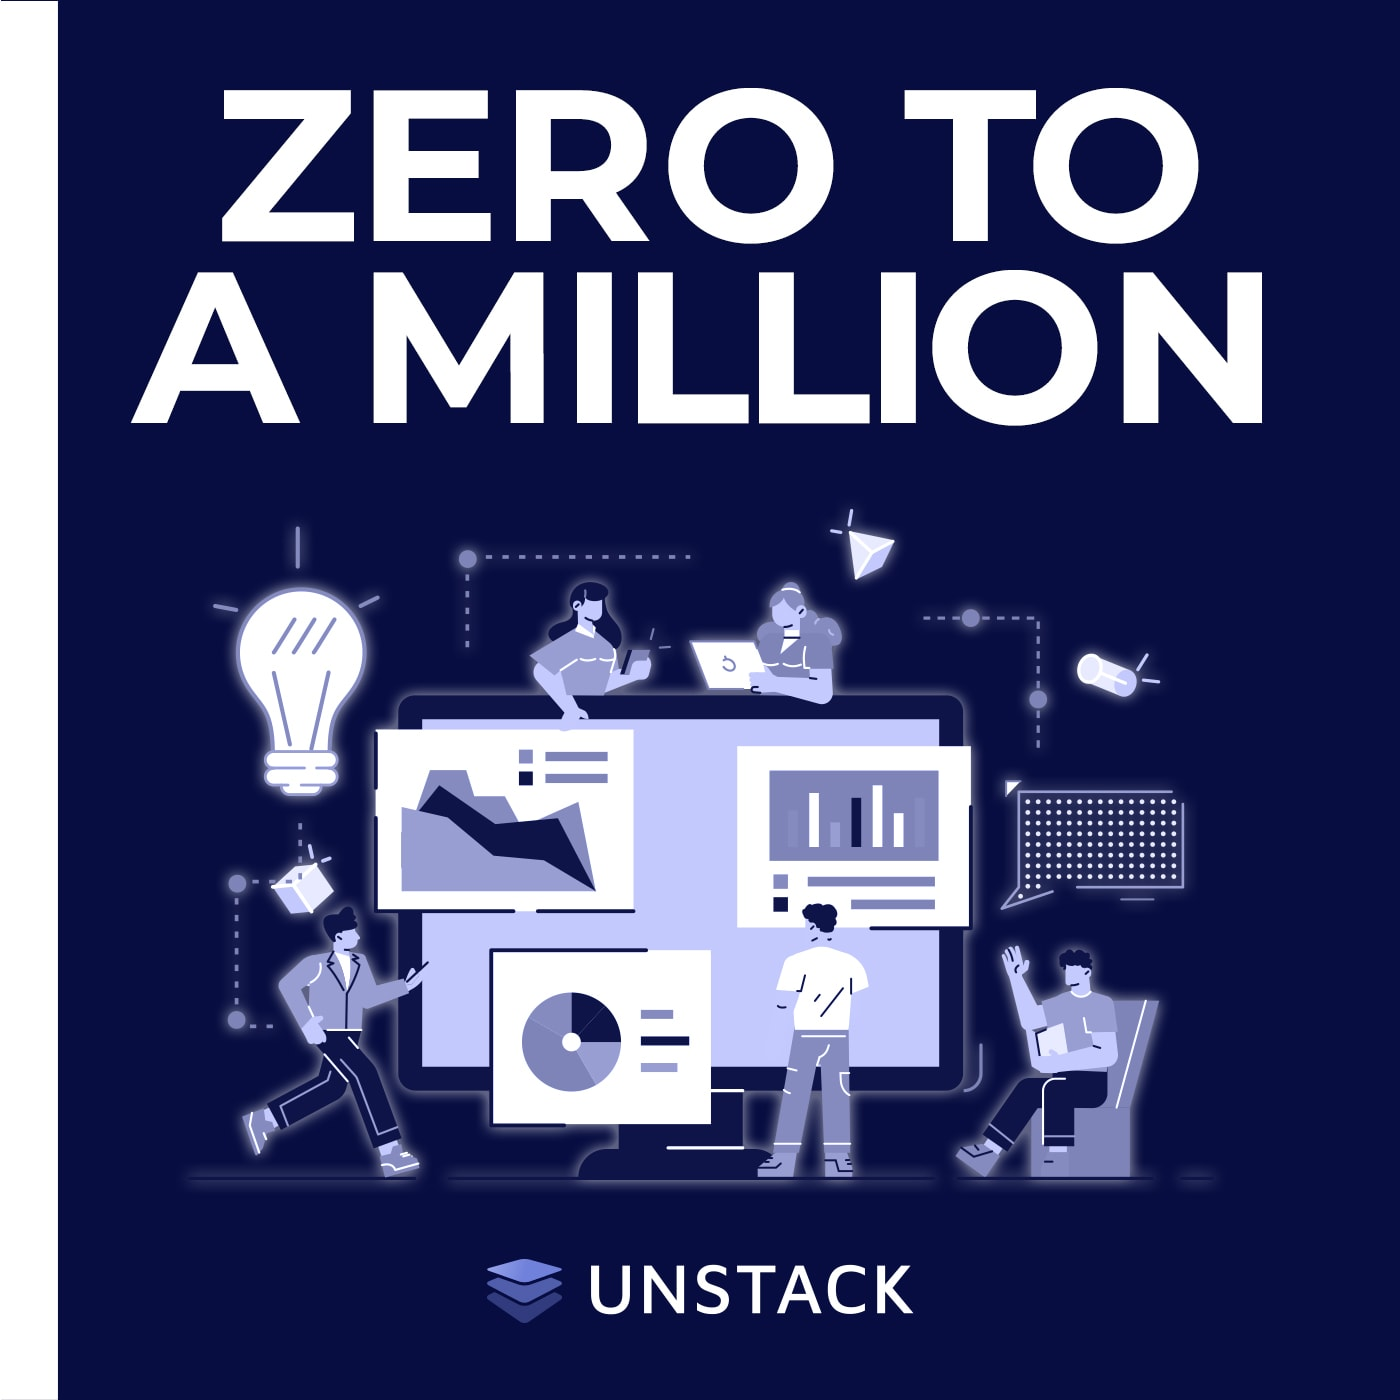 Zero to a Million: The Best Business Books to Scale Your Business In 2021